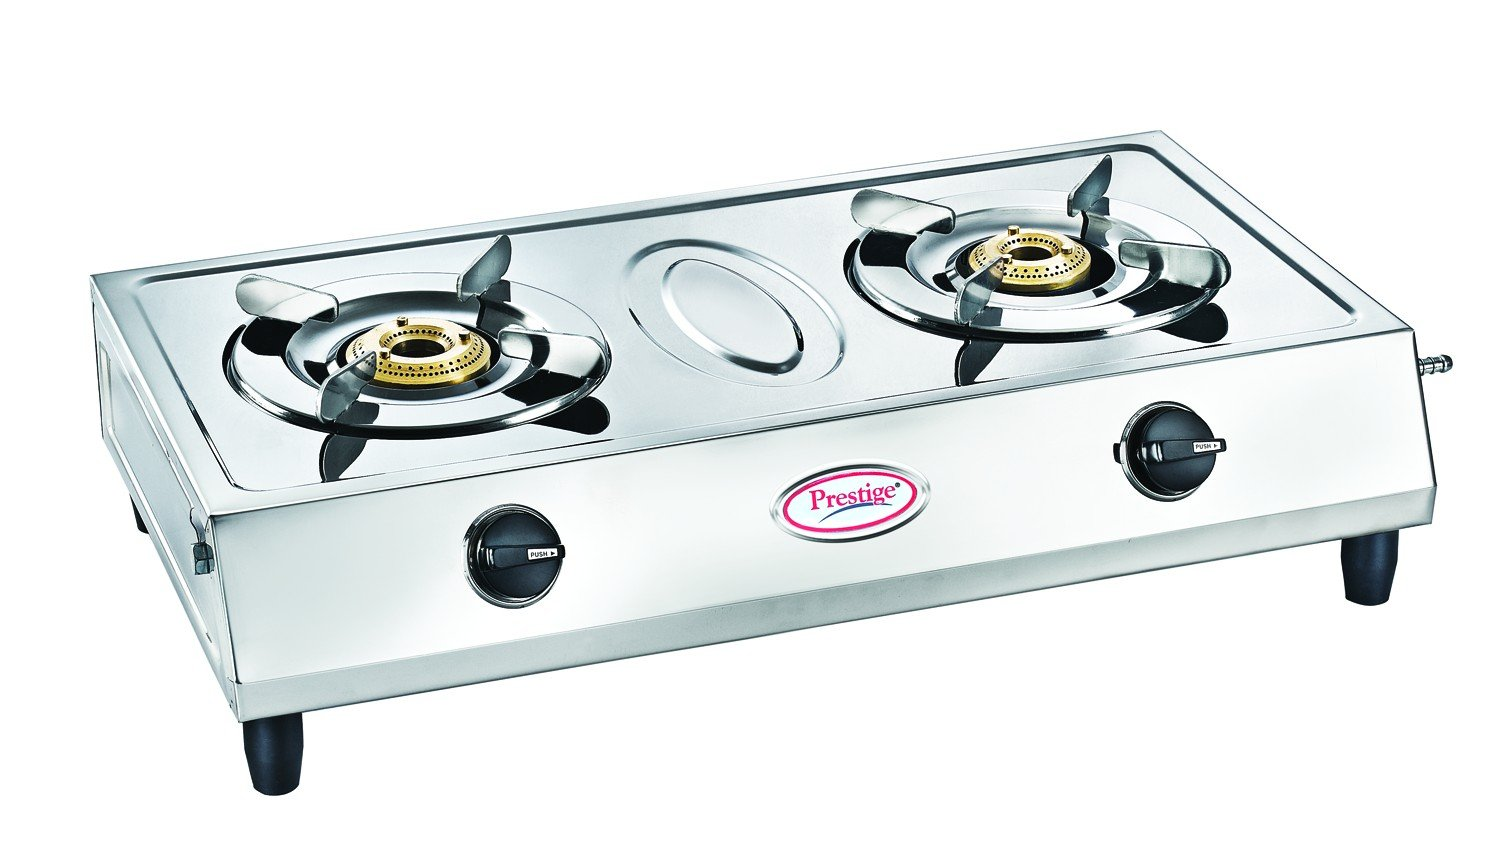 90 Gas Stove Stainless Steel Ideale Graacio Tiano